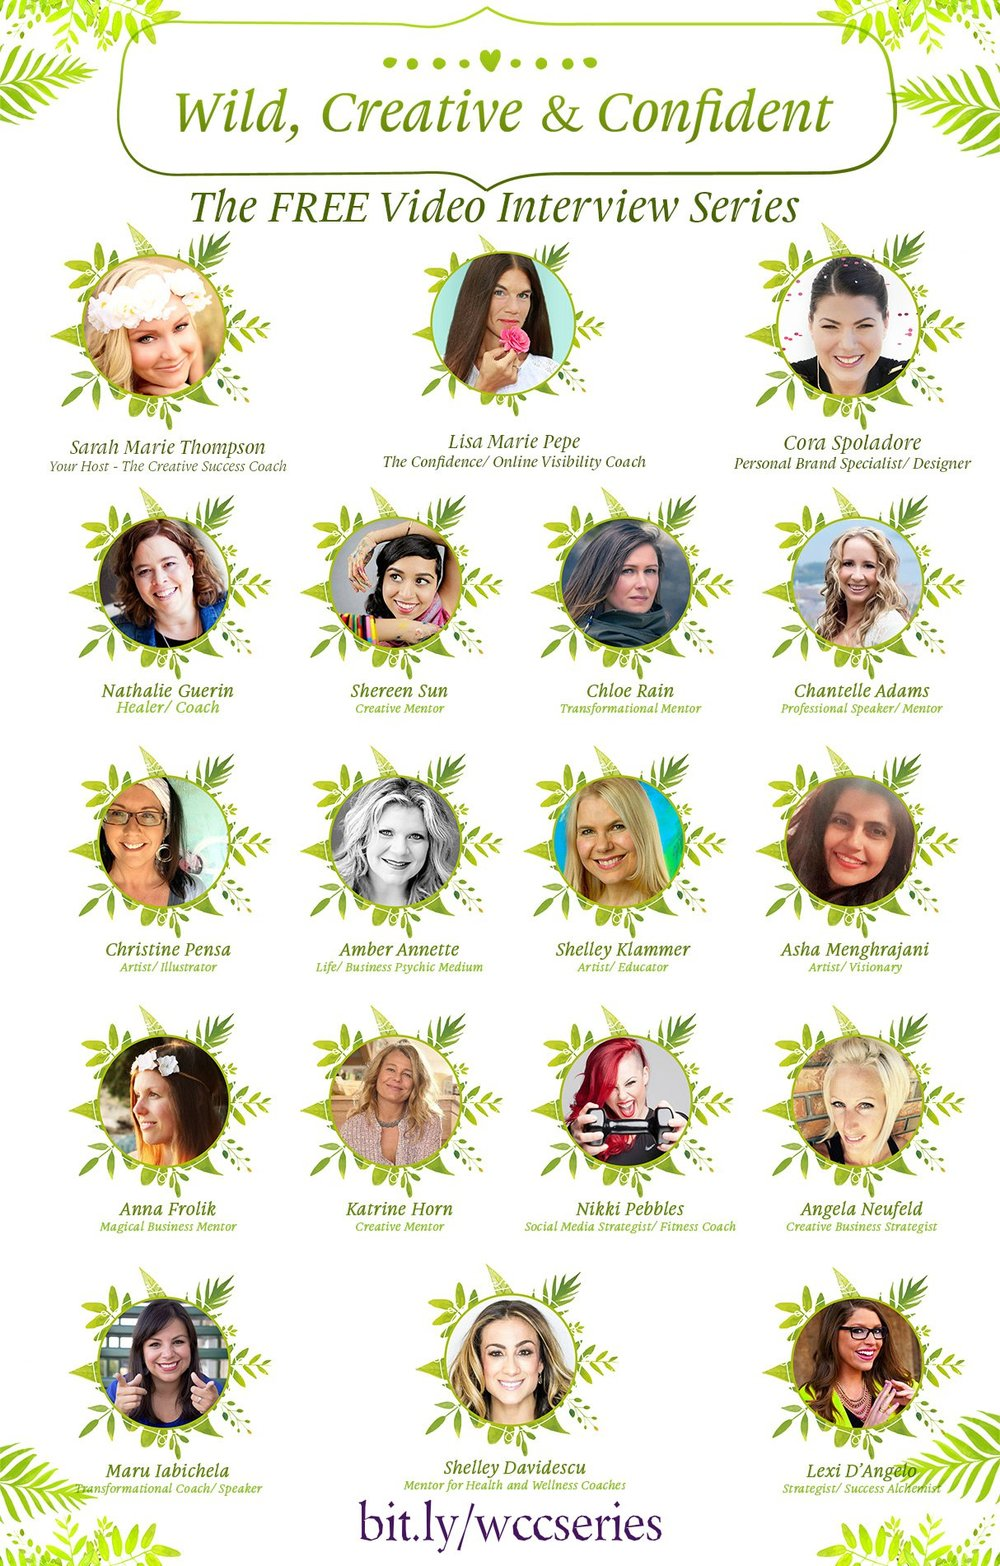 Join myself and 17 other inspiring women talk about creativity, inspiration and building a dream business. It's FREE! May 2016 bit.ly/wccseries